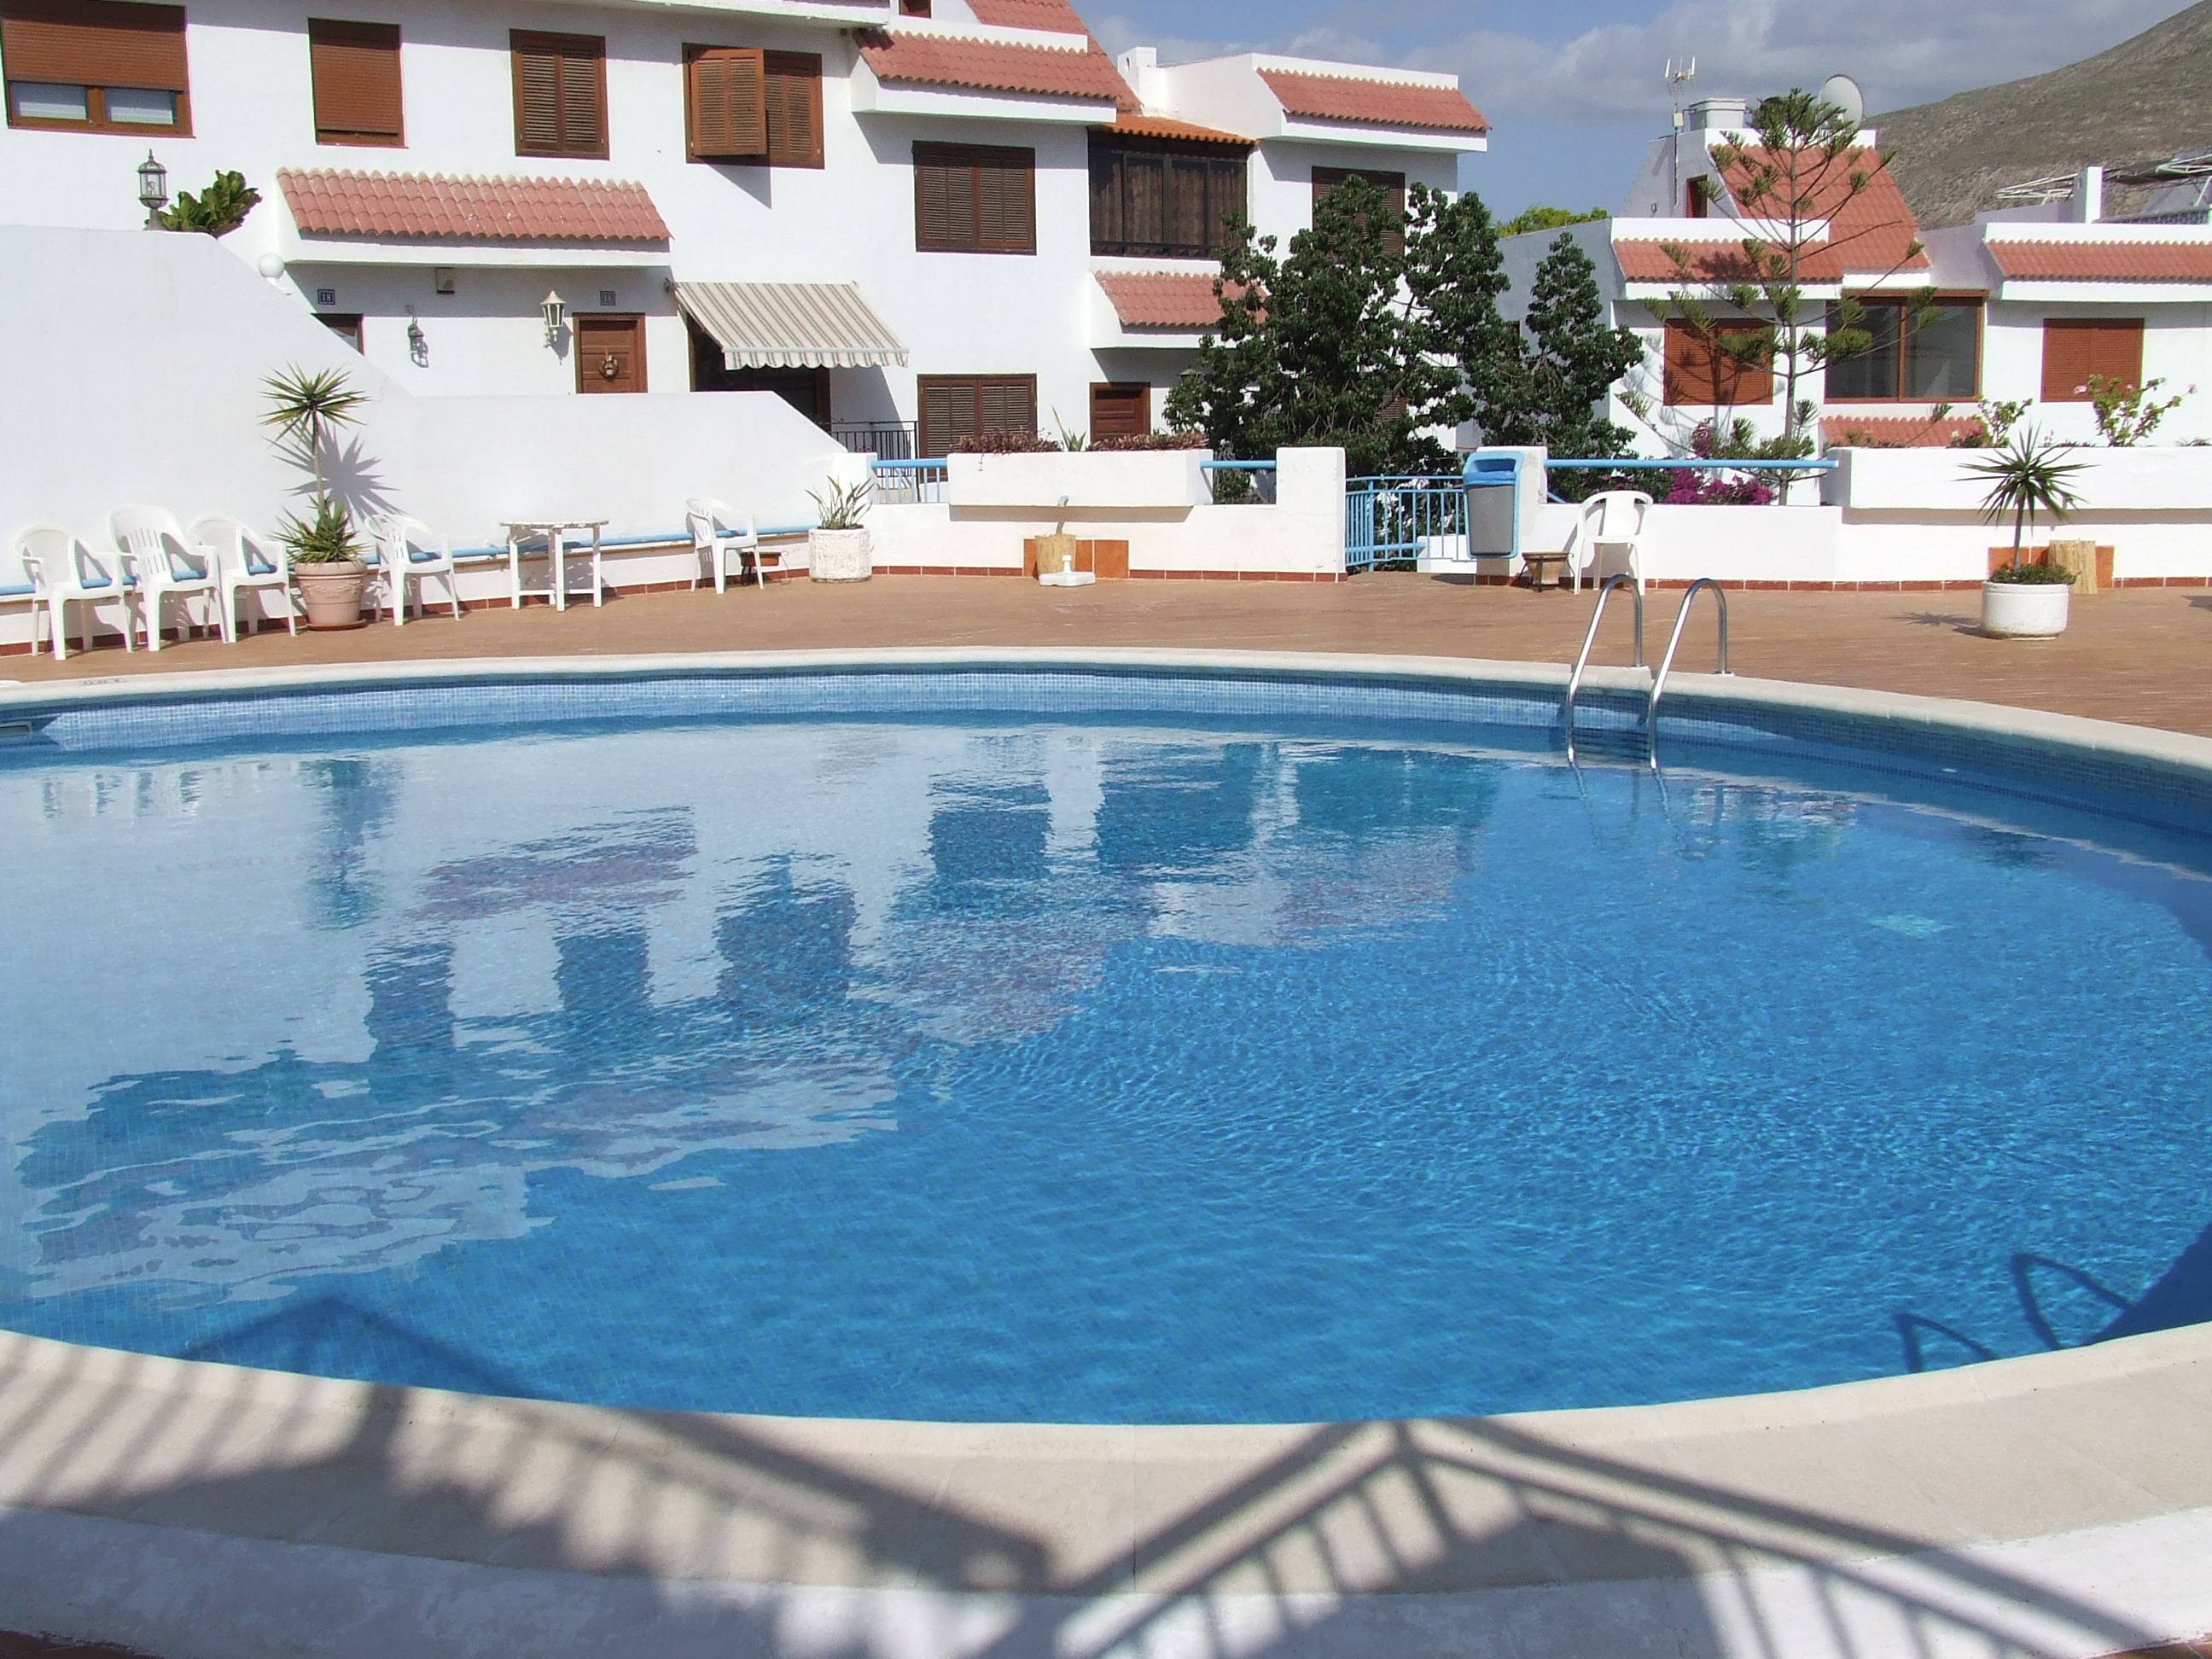 Tenerife | Los Cristianos | 1 Bed | UK£ 100,000